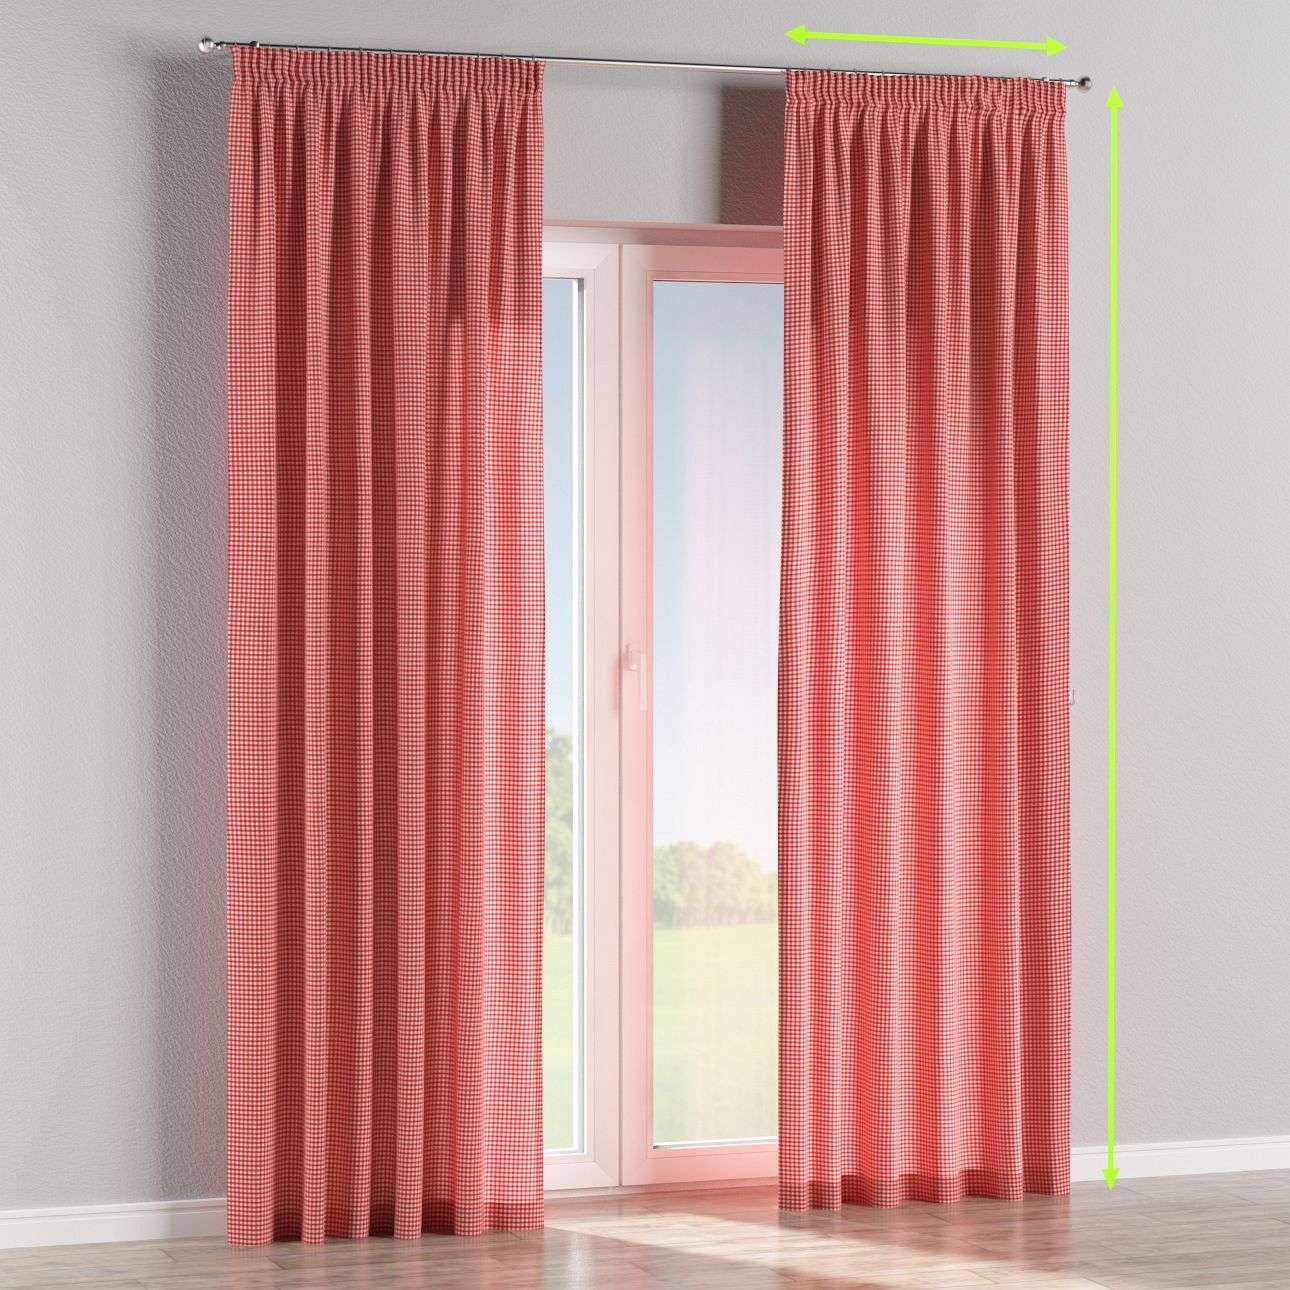 Pencil pleat lined curtains in collection Quadro, fabric: 136-15